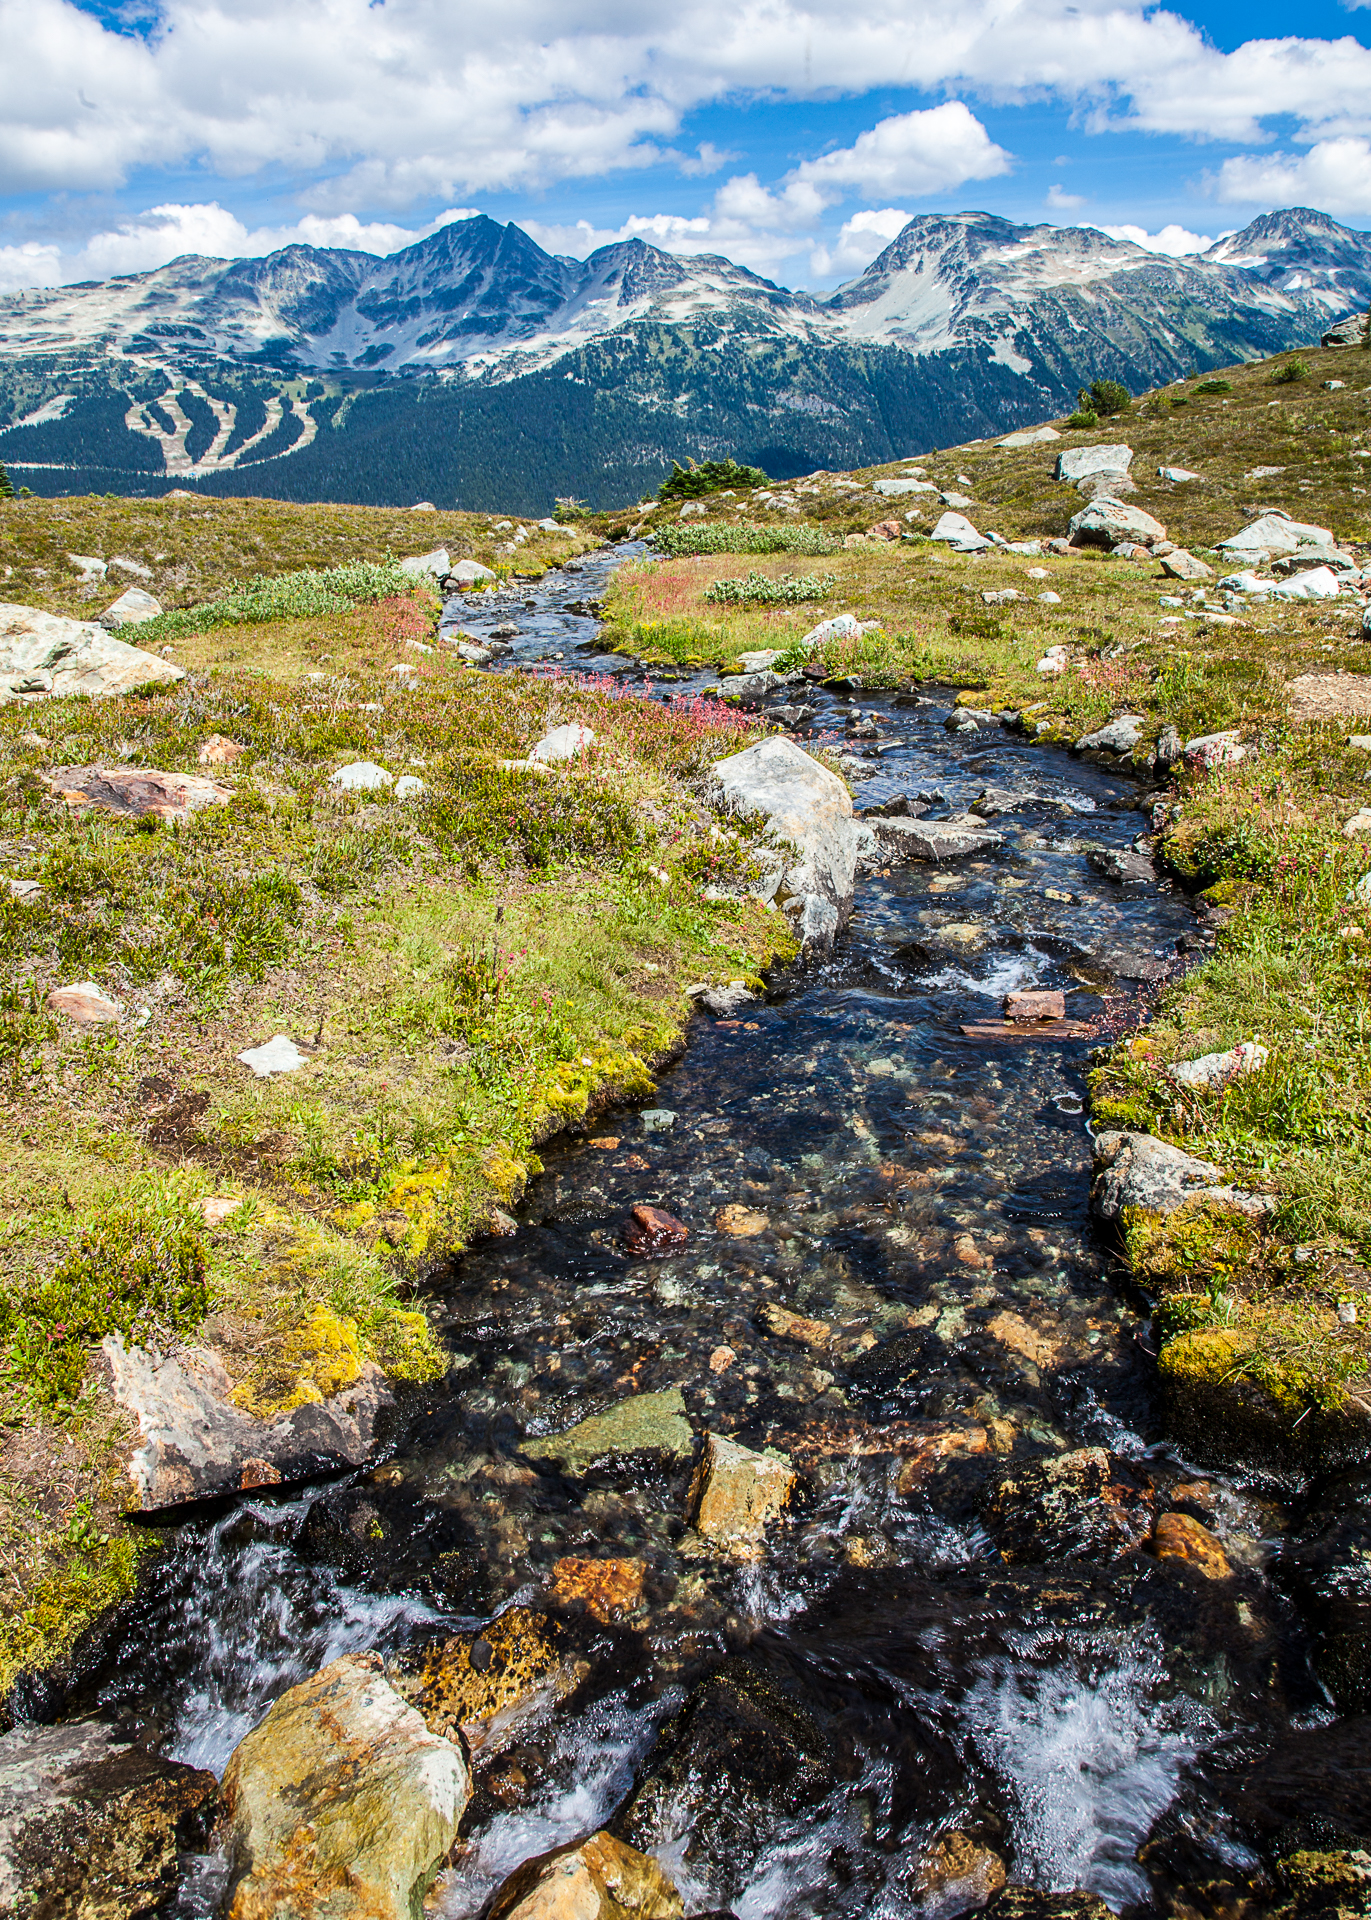 A small stream, flowing down off the mountain.